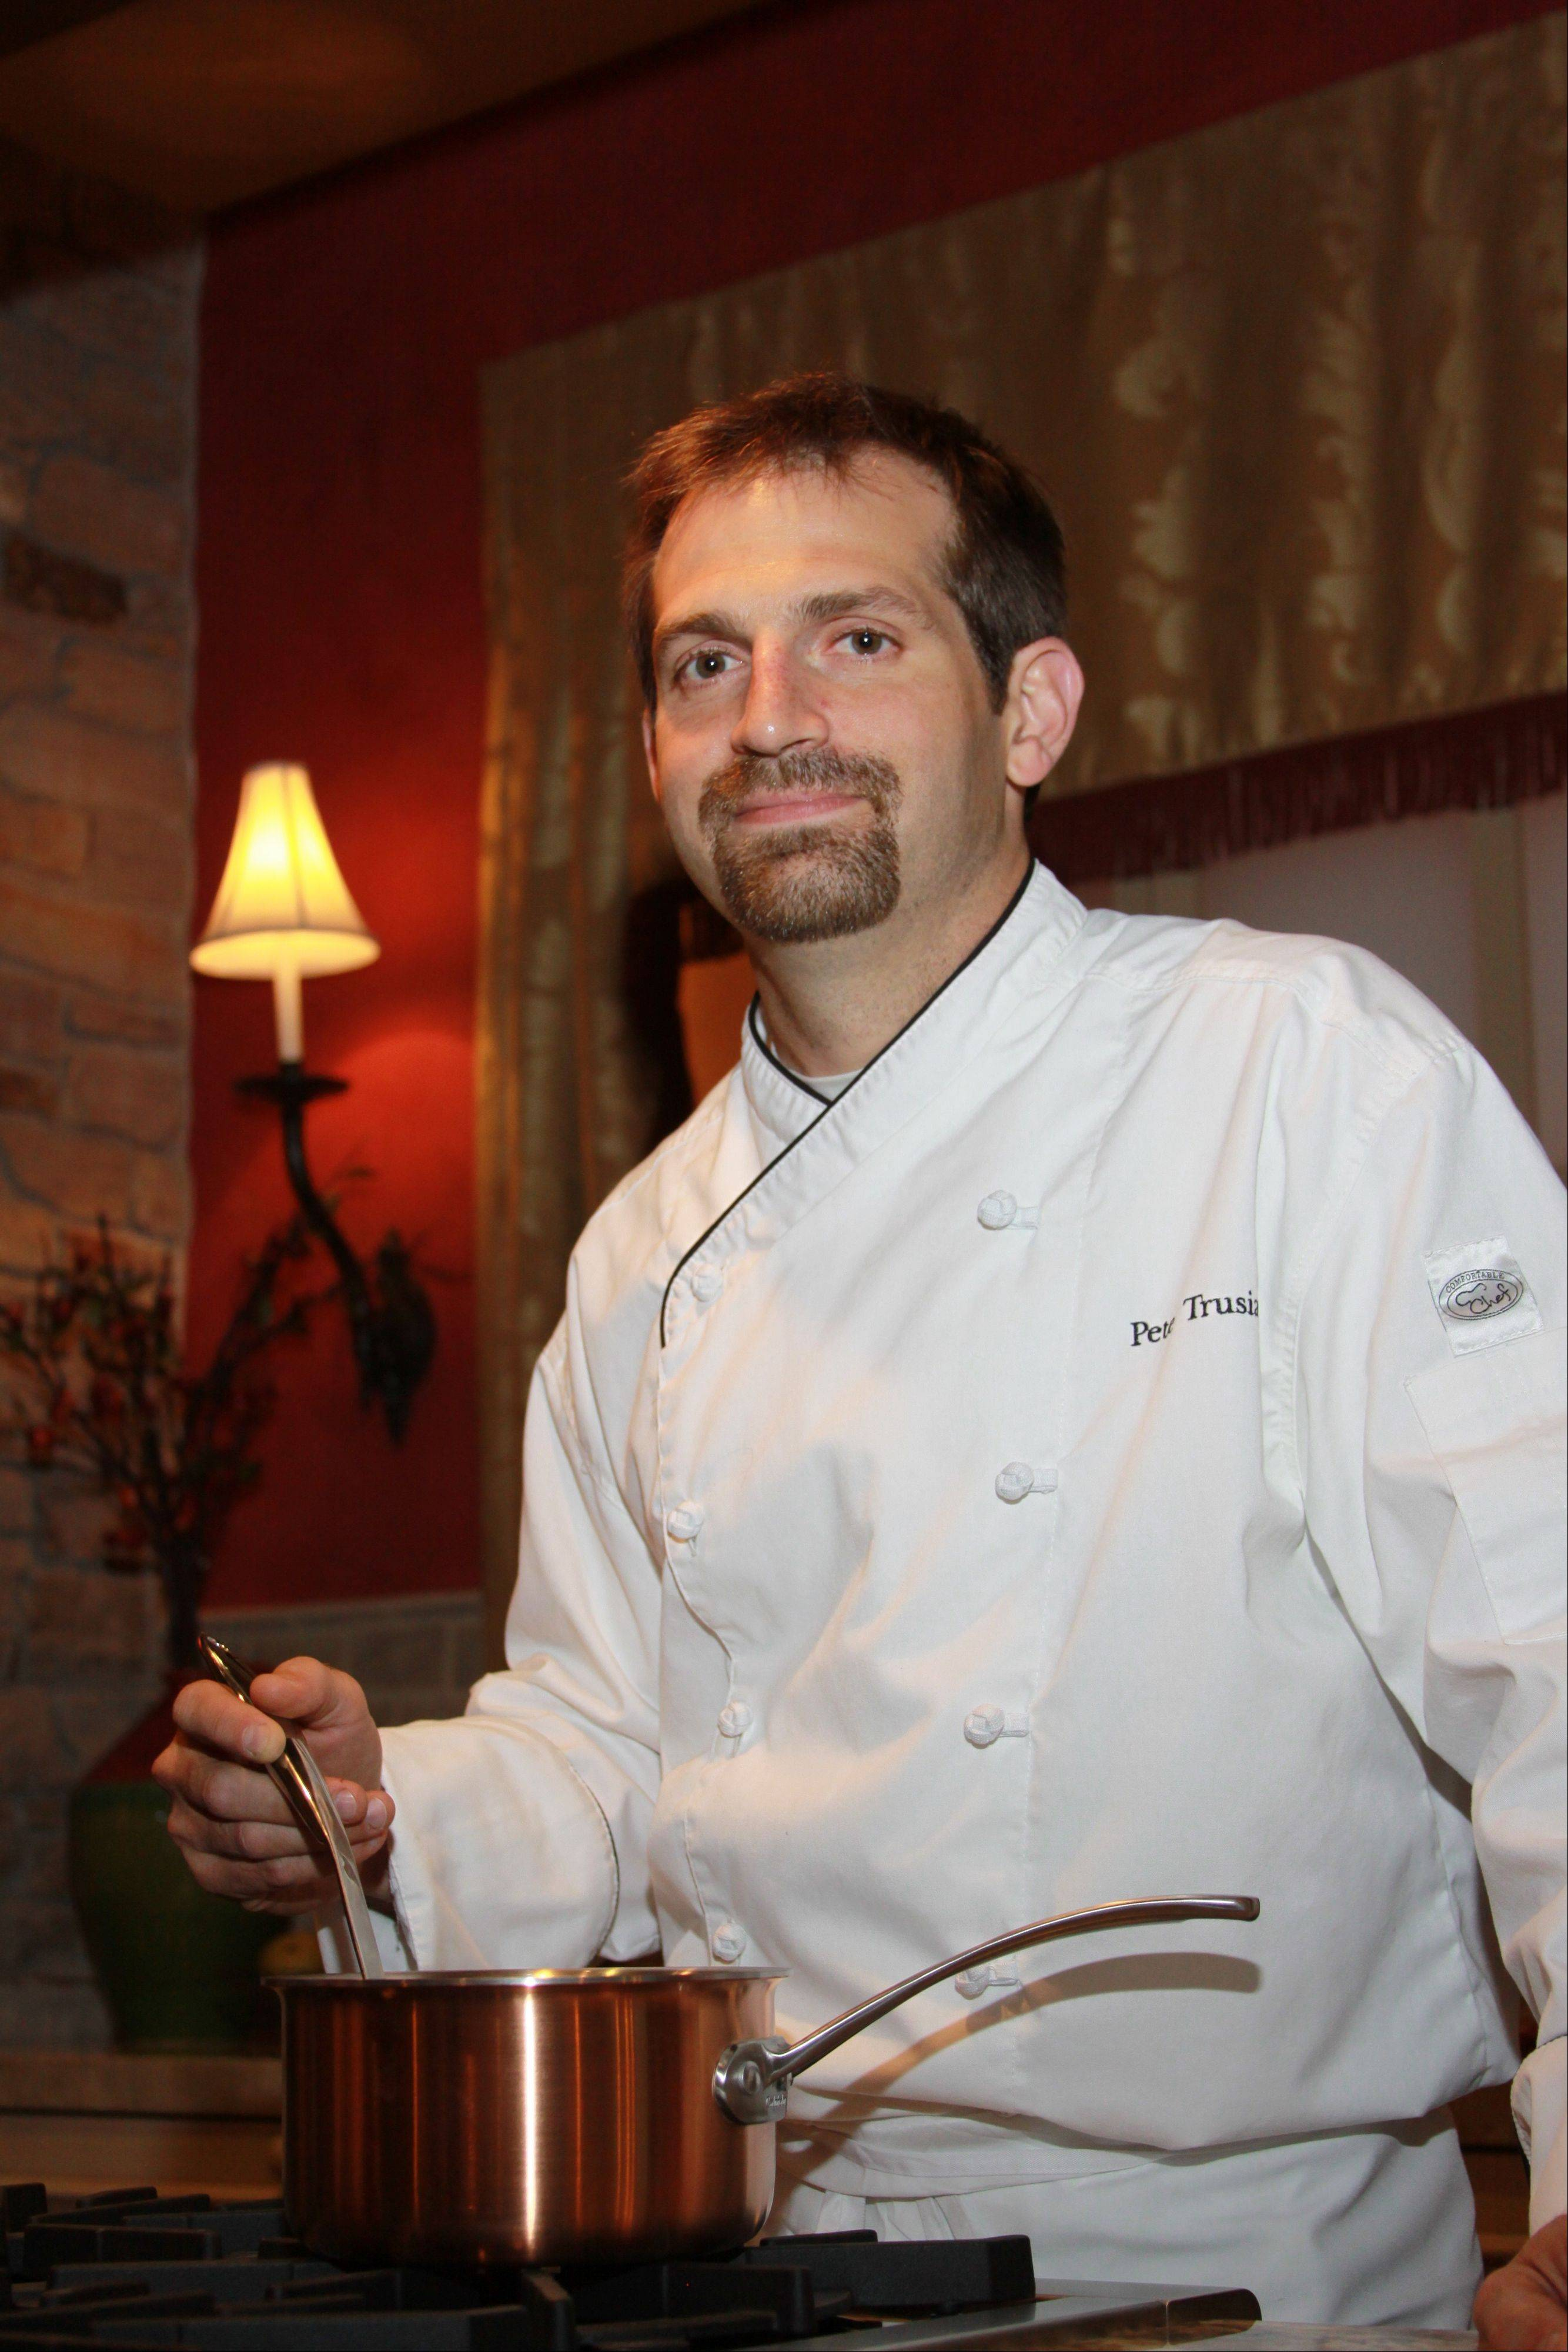 Chef du Jour: Chef turns his skill toward teaching from his 'man cave'